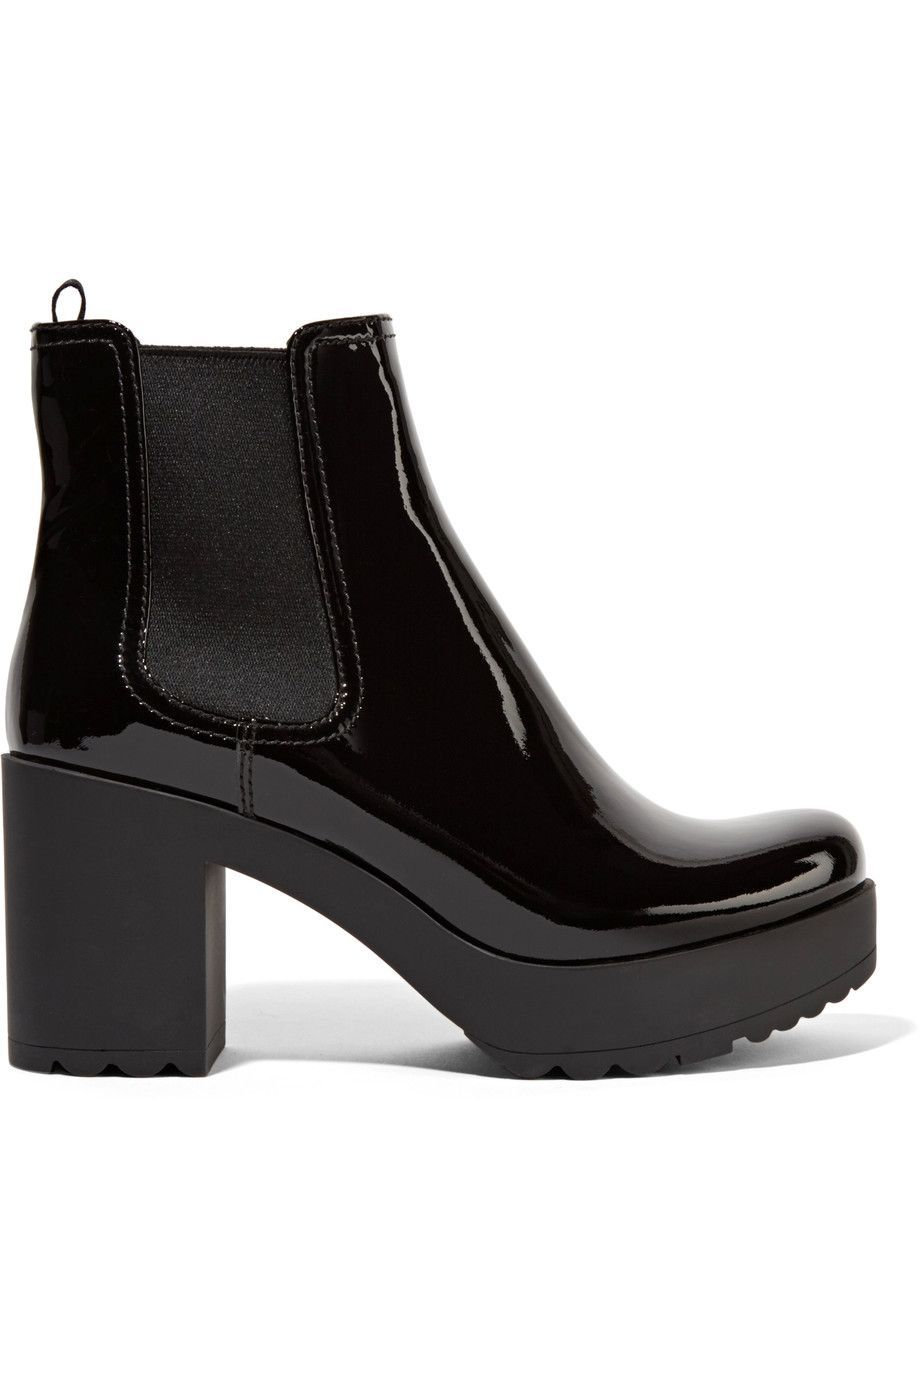 These Boots Platform Inches Few Give Will You A Extra qqH5rnx